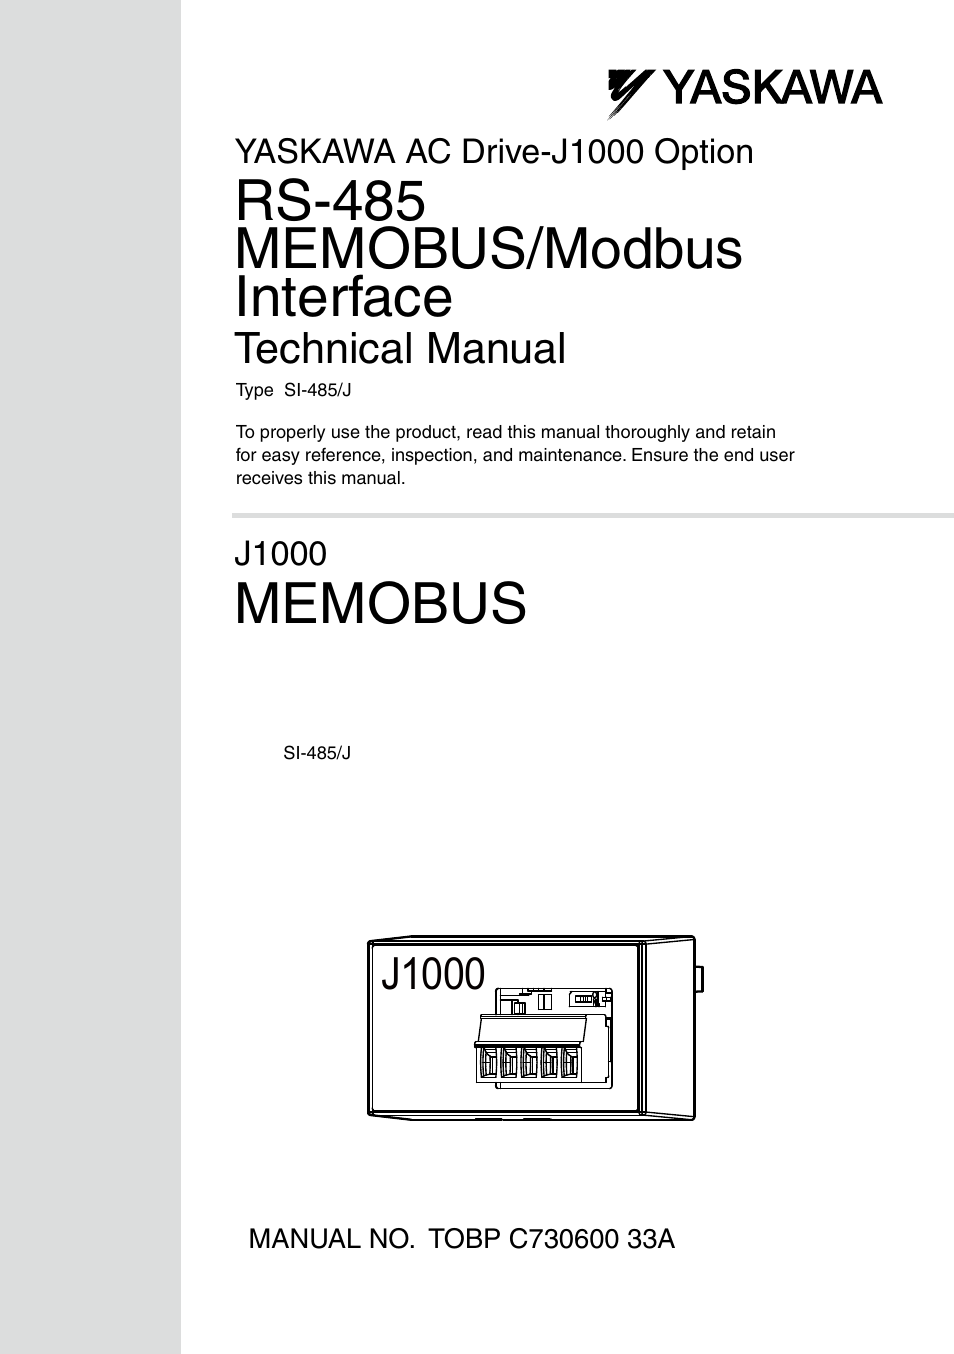 Yaskawa RS-485 MEMOBUS User Manual | 30 pages | Original mode on